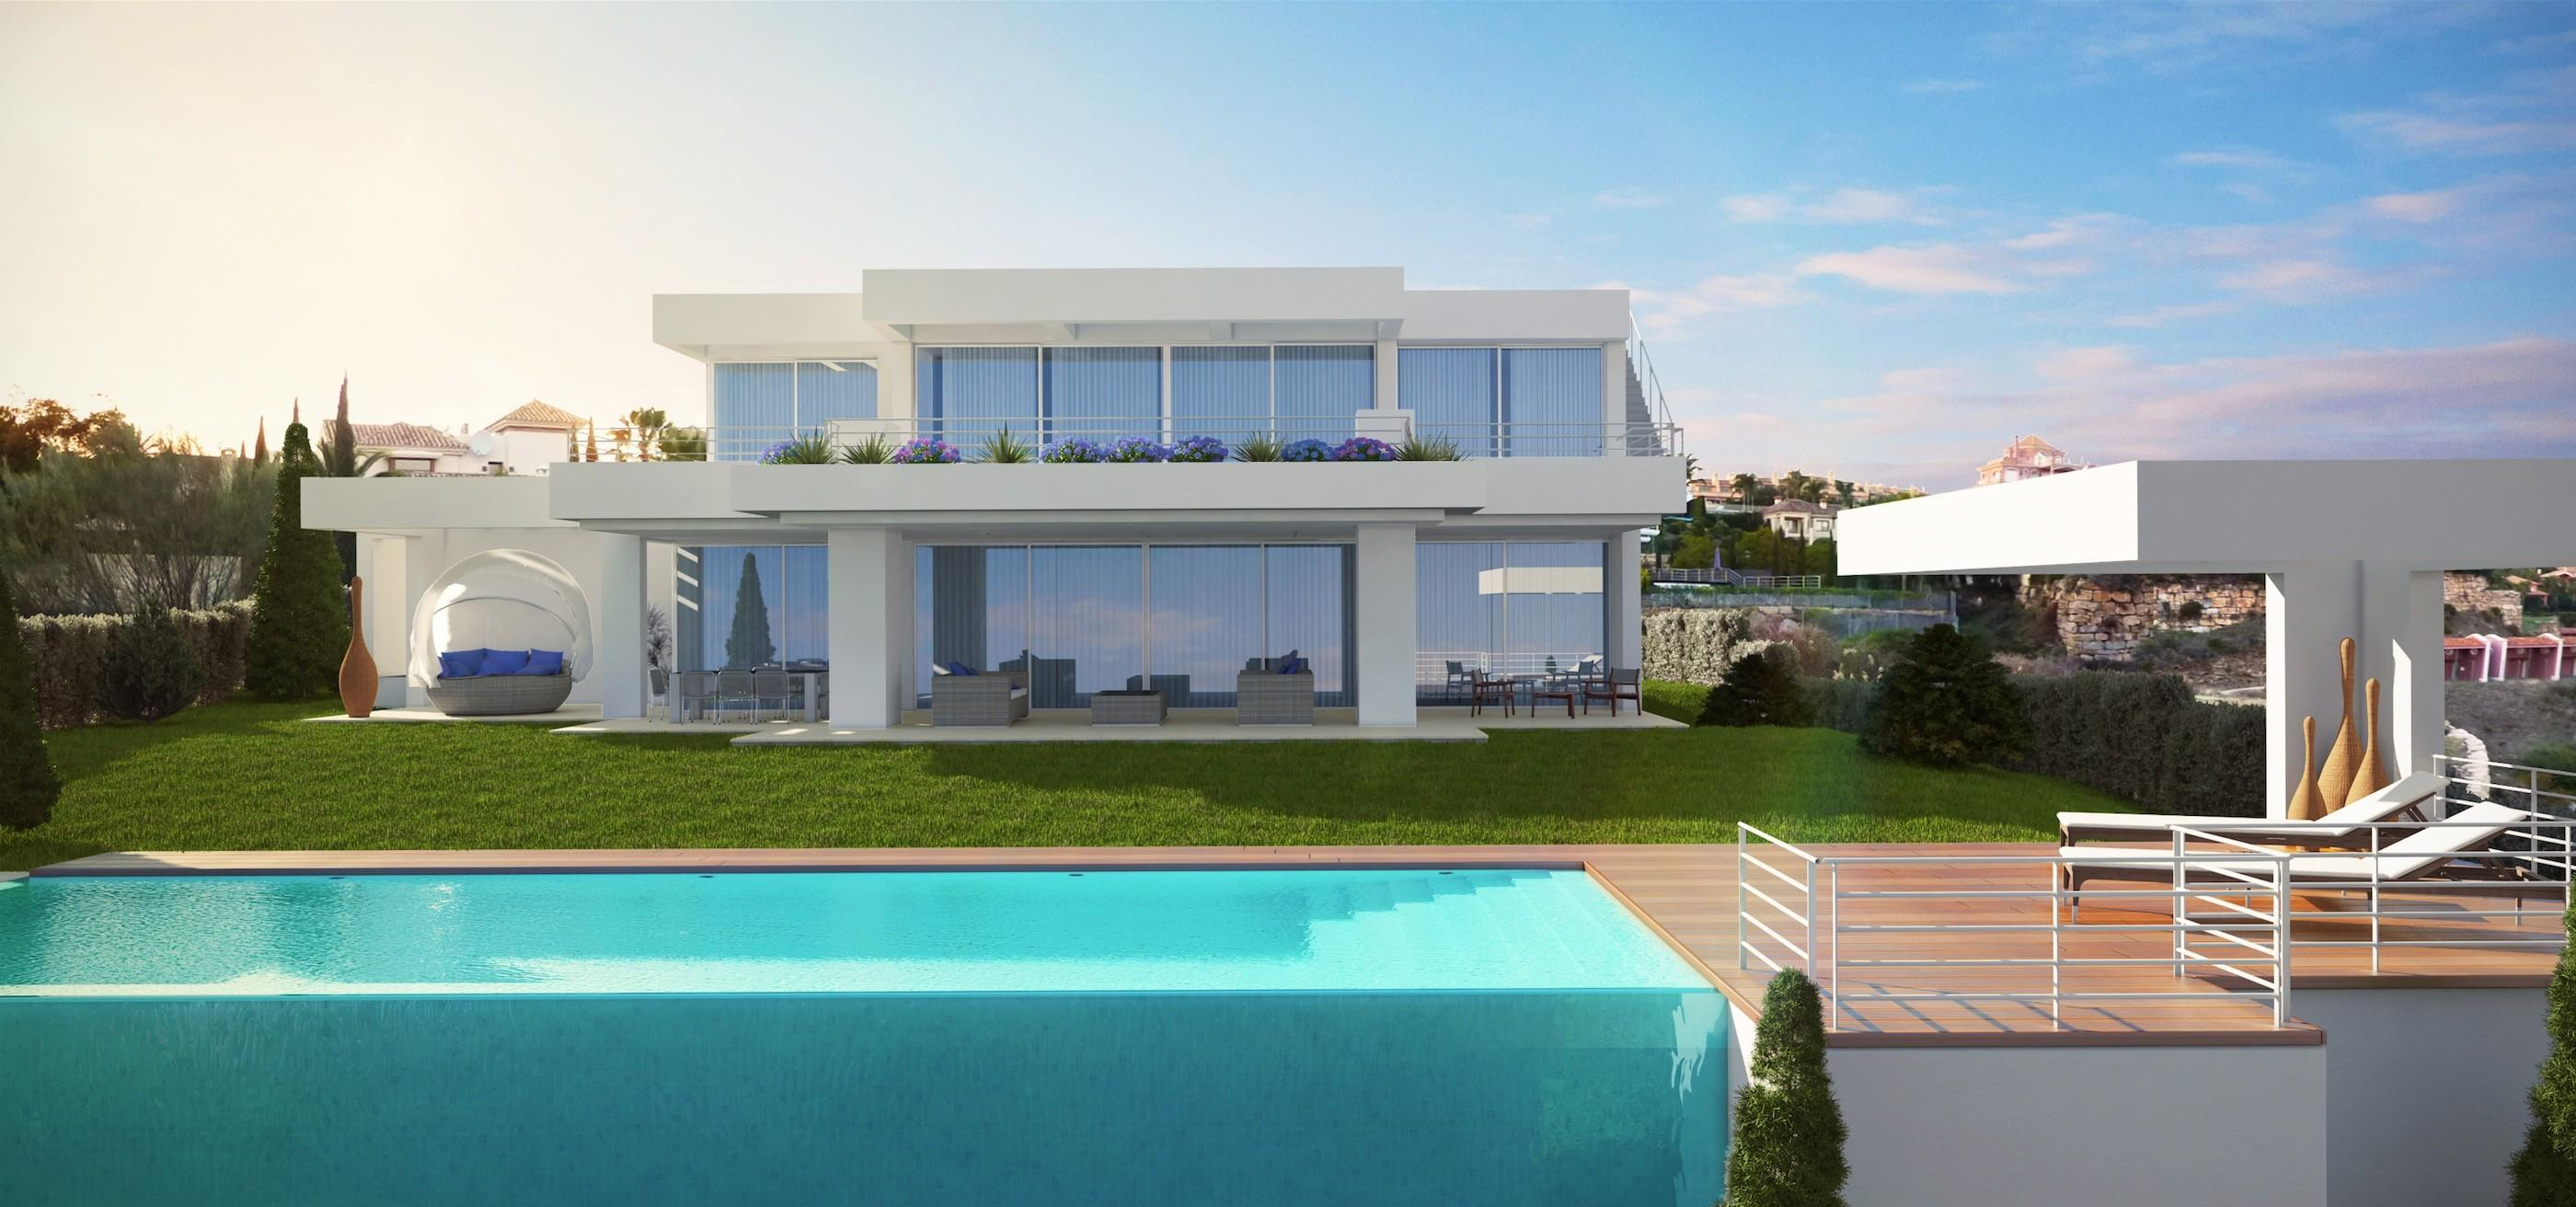 Architectures Modern Luxury Villas Designed Gal Marom